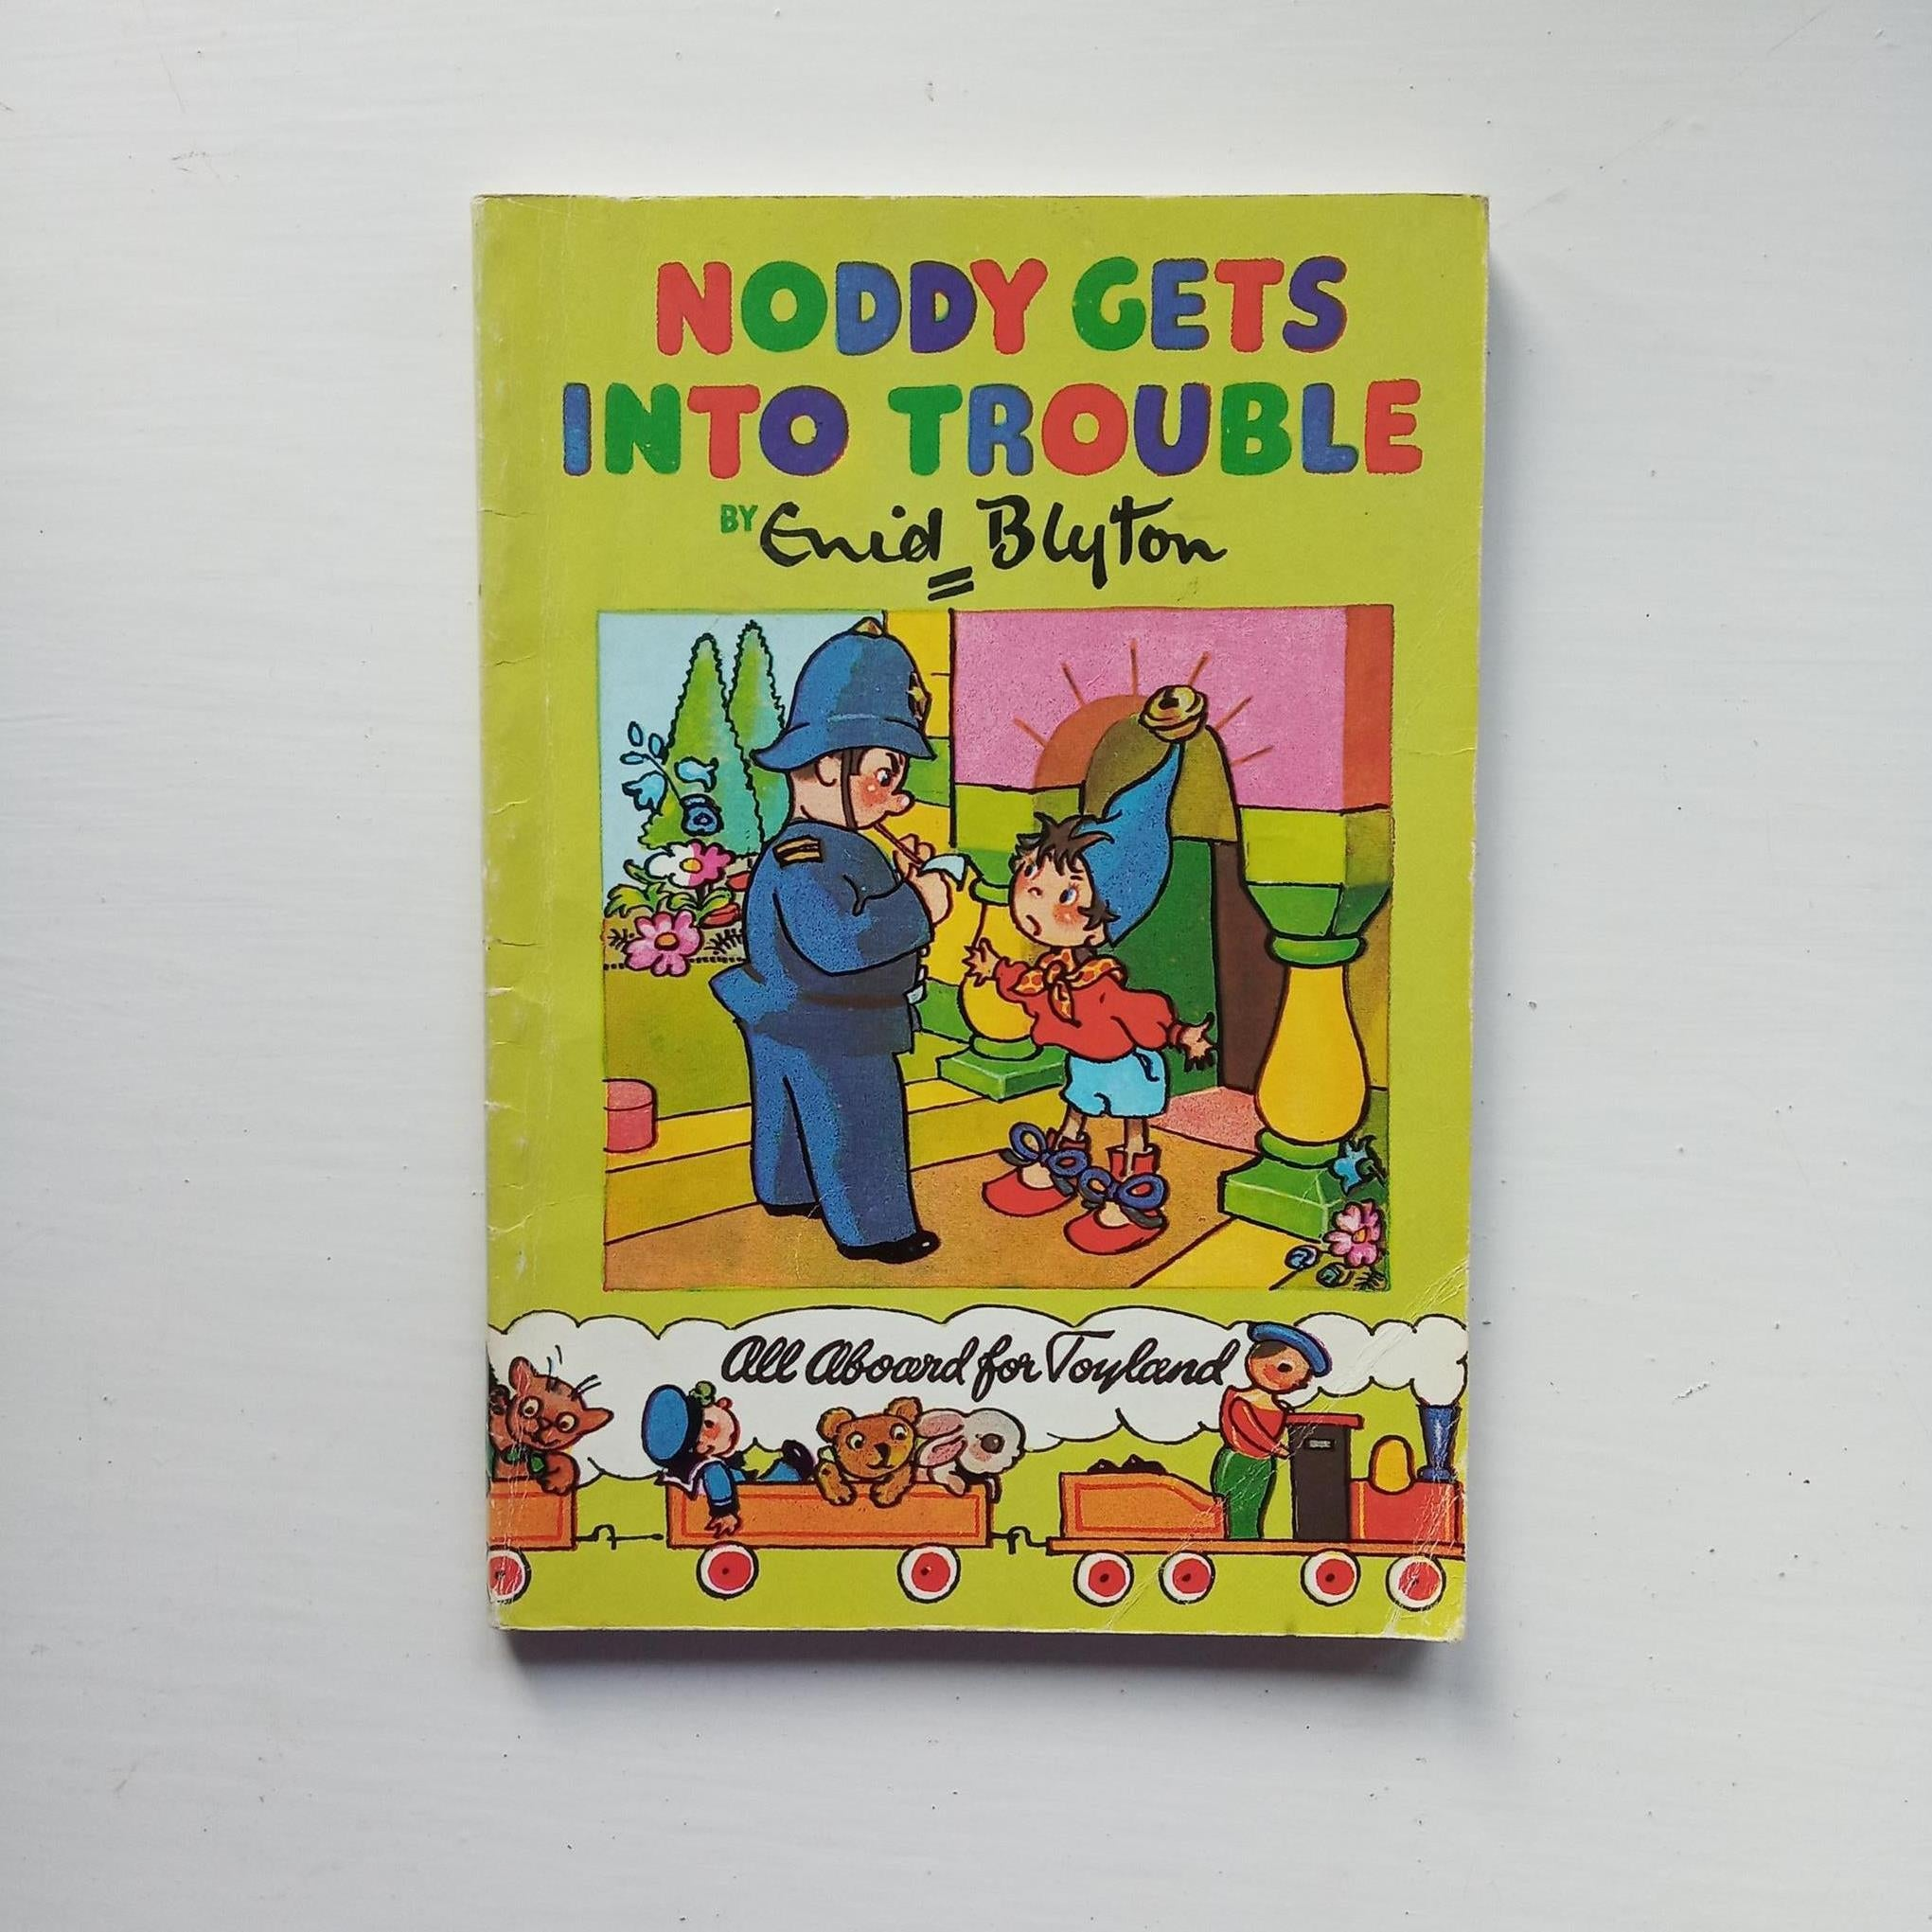 Noddy Gets Into Trouble by Enid Blyton